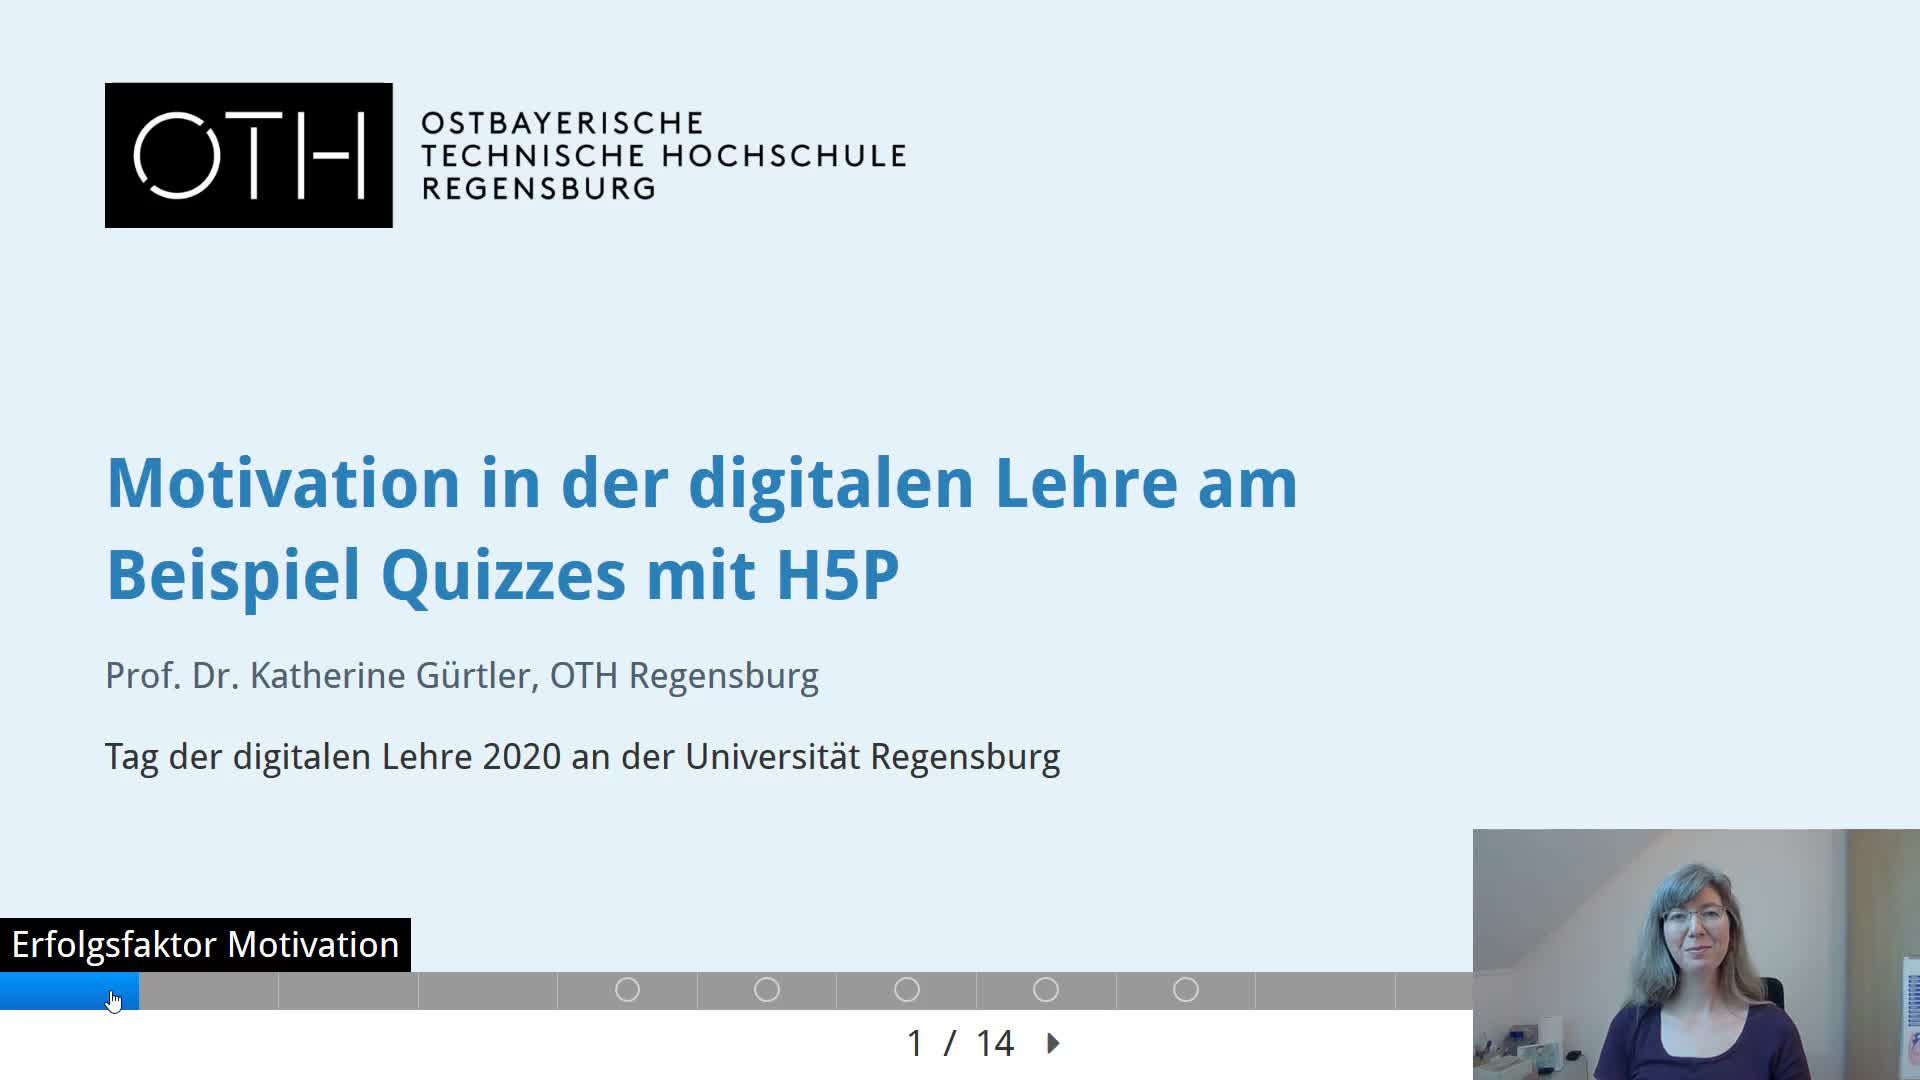 Motivation in der digitalen Lehre am Beispiel Quizzes mit H5P